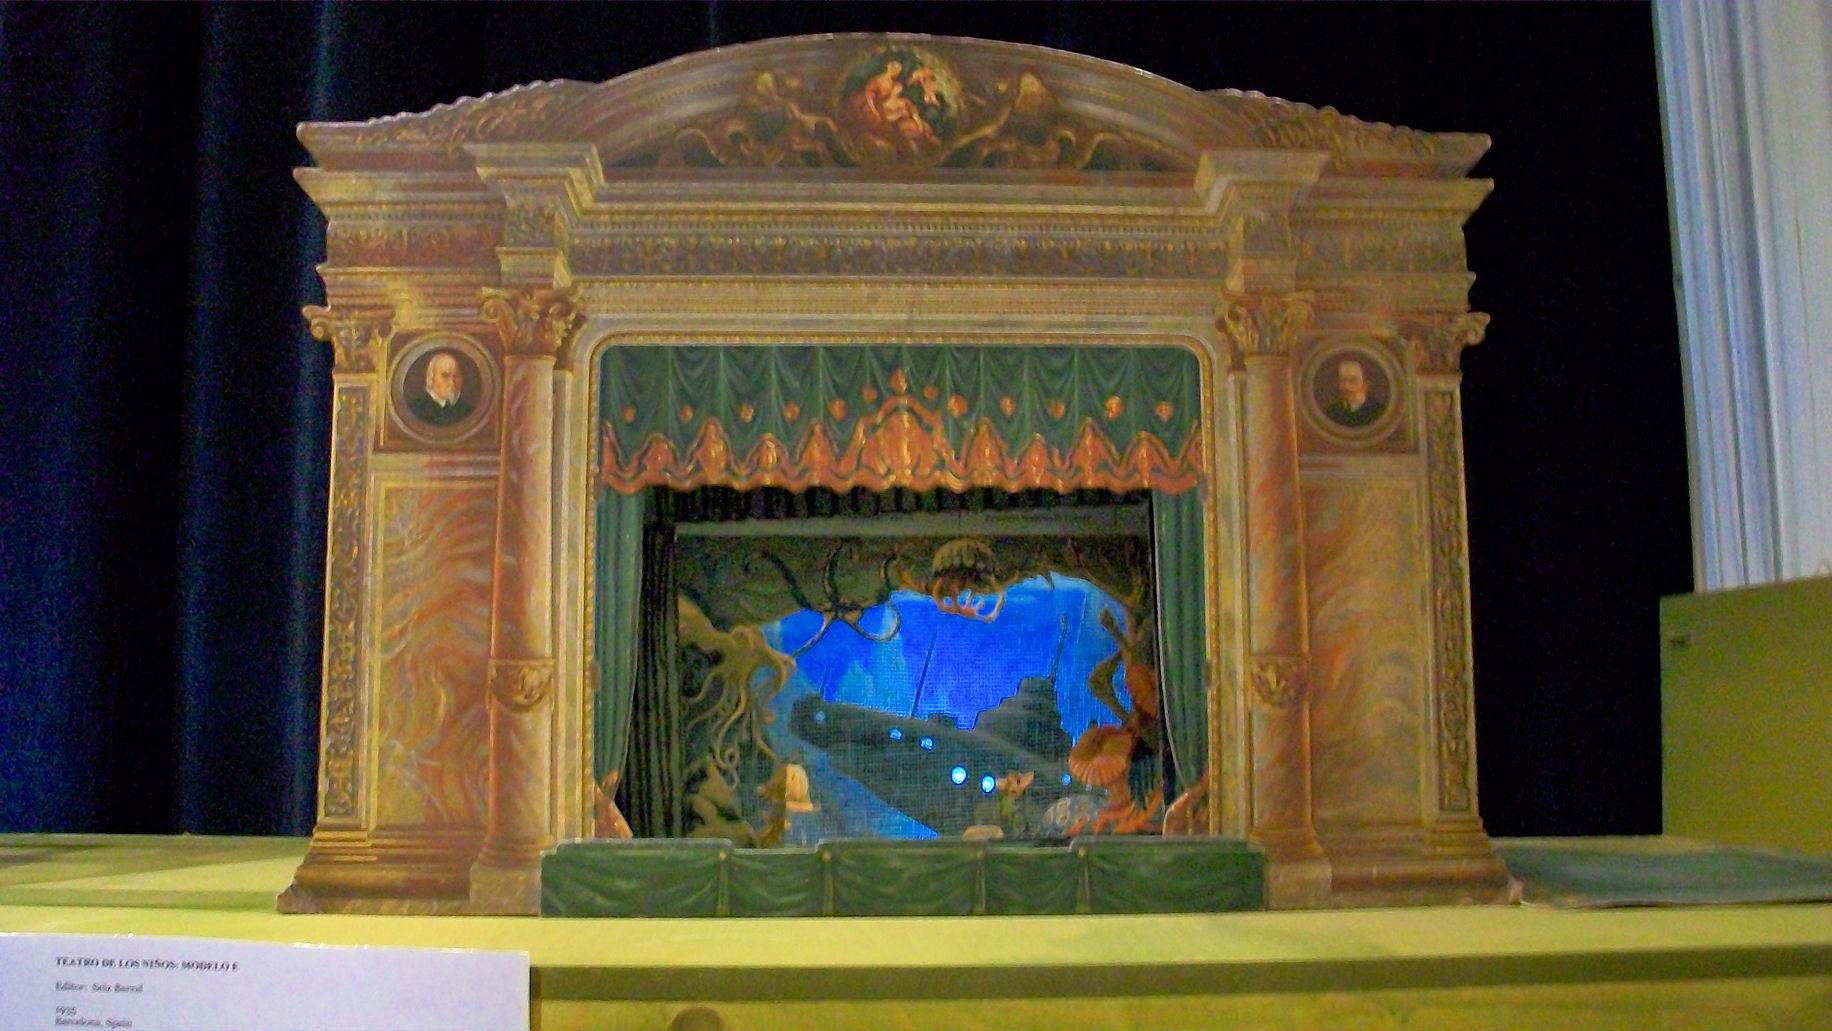 Spanish Toy Theatre